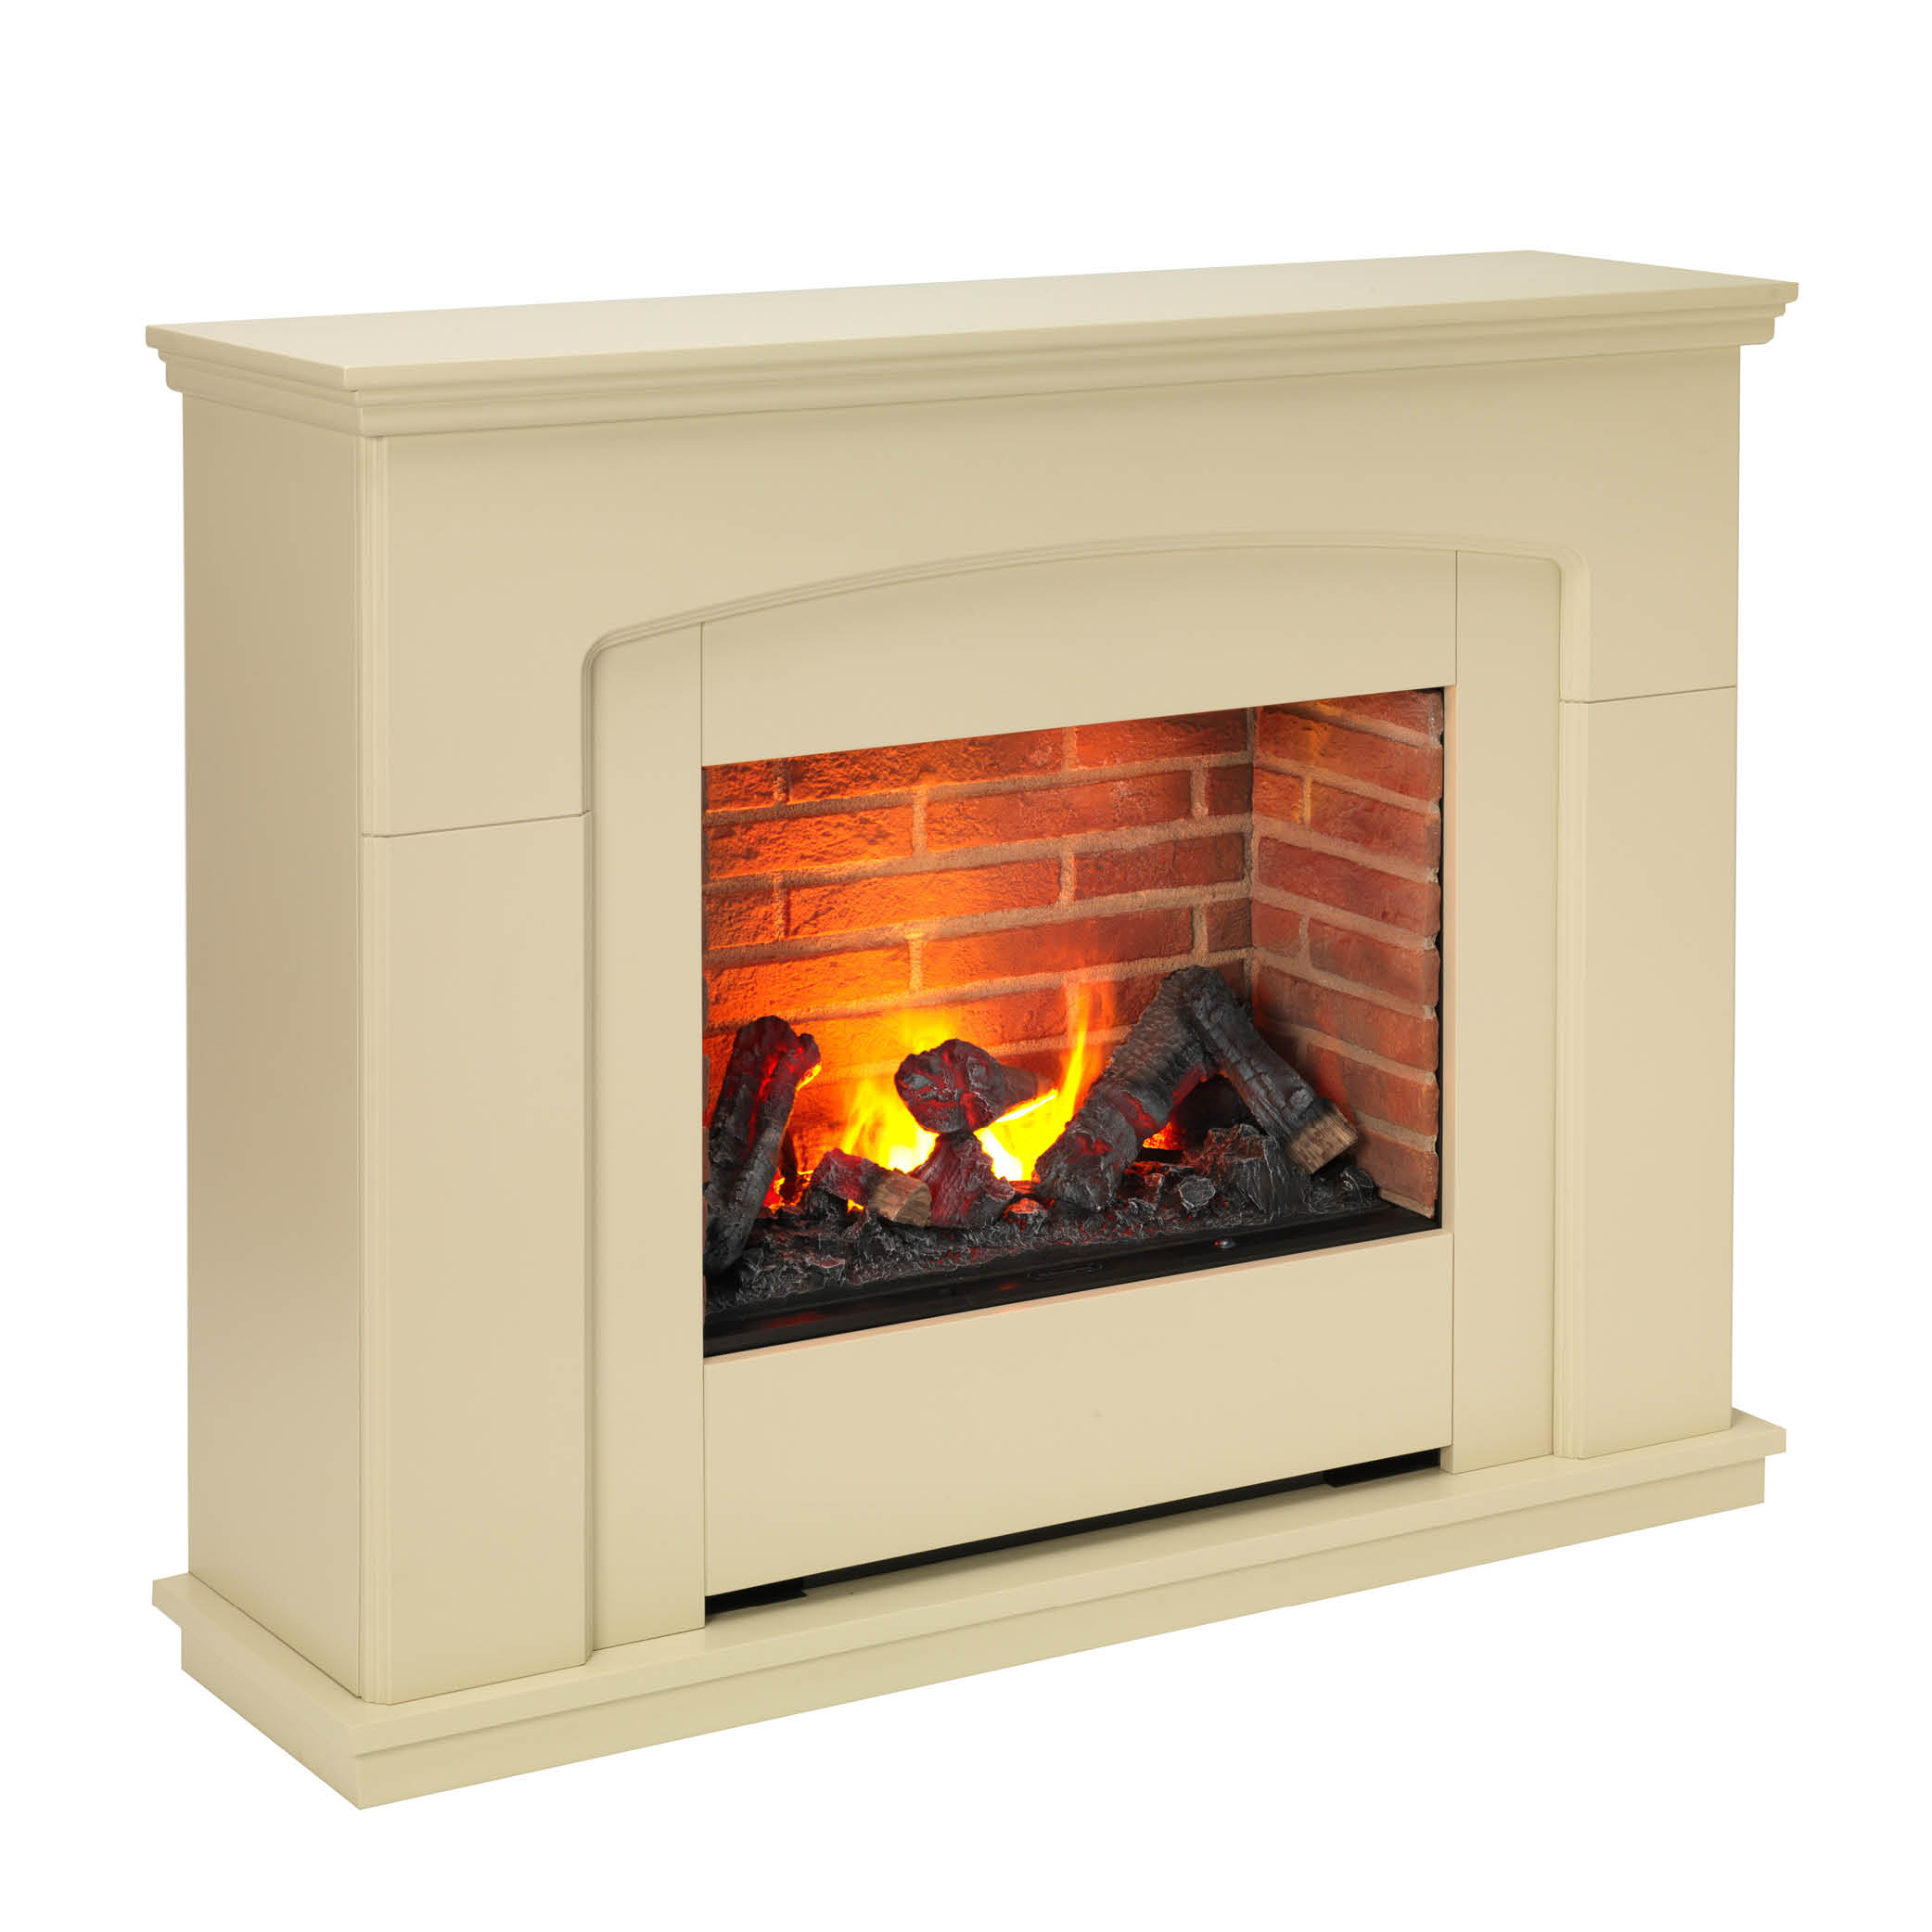 Alameda 2kw Optimyst Electric Fire With Mantle Model